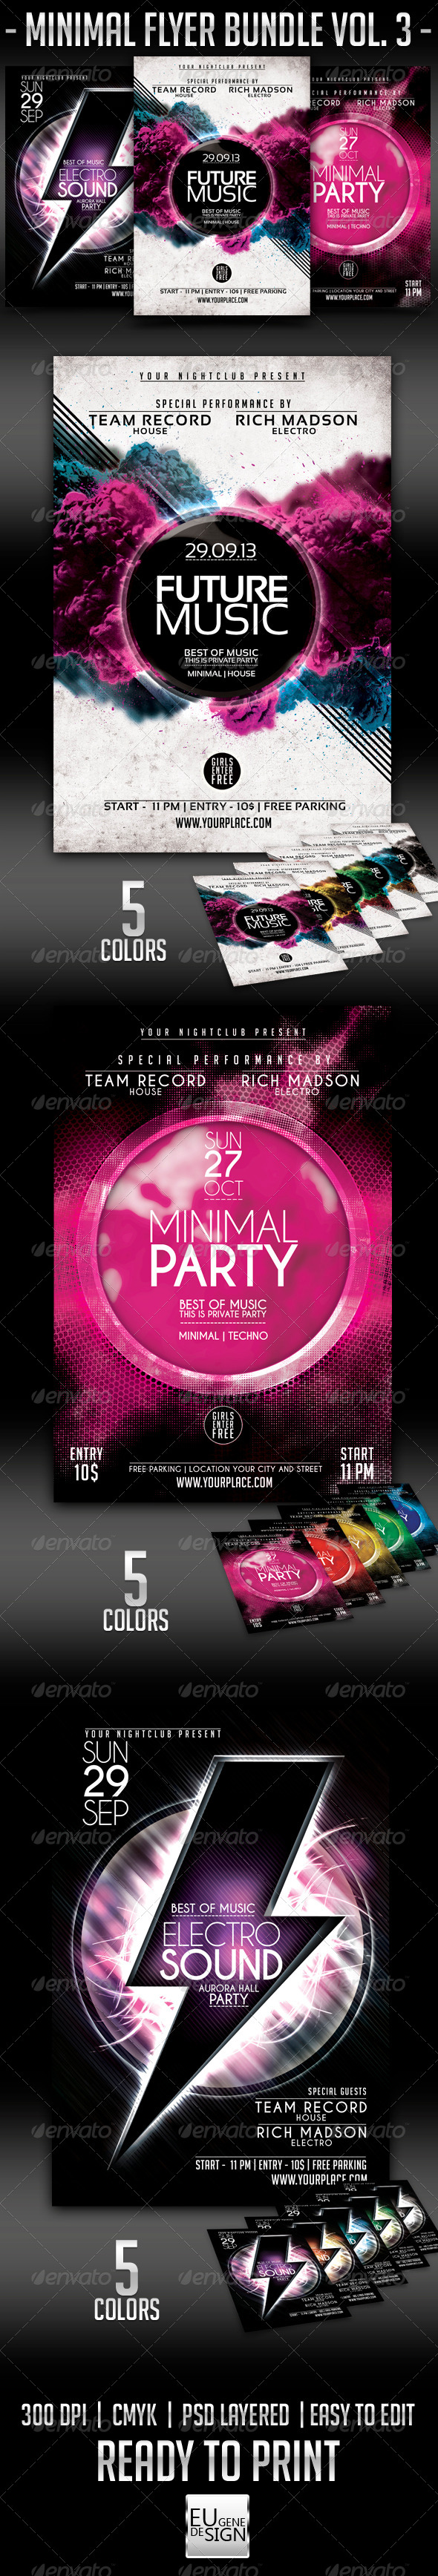 Minimal Flyer Bundle Vol.3 - Clubs & Parties Events